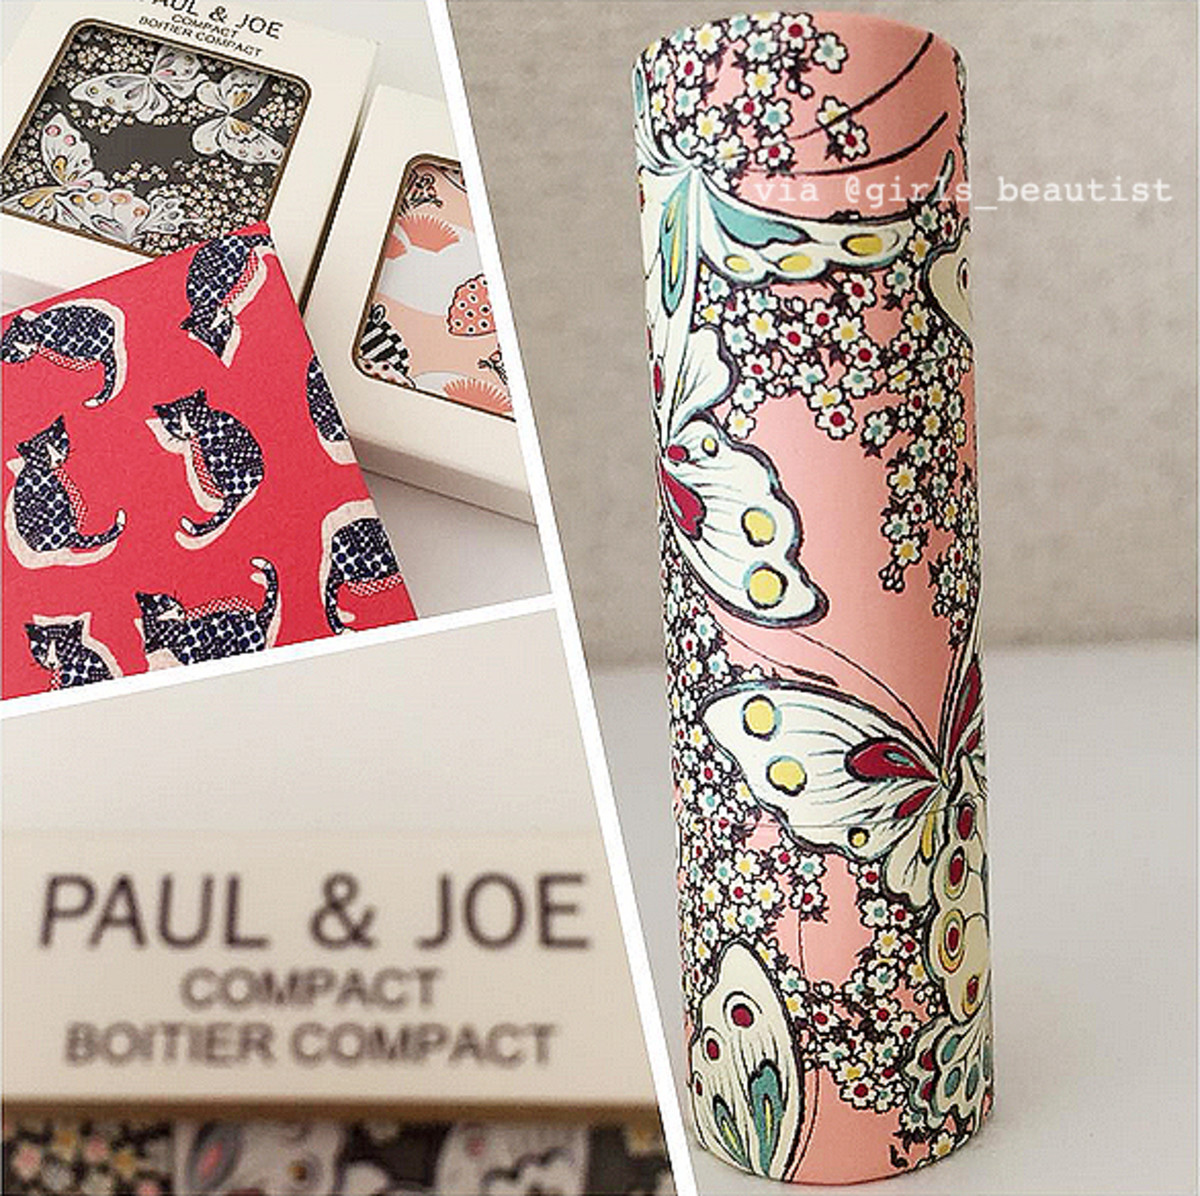 Paul & Joe Spring 2016 Papillons de Printemps patterns